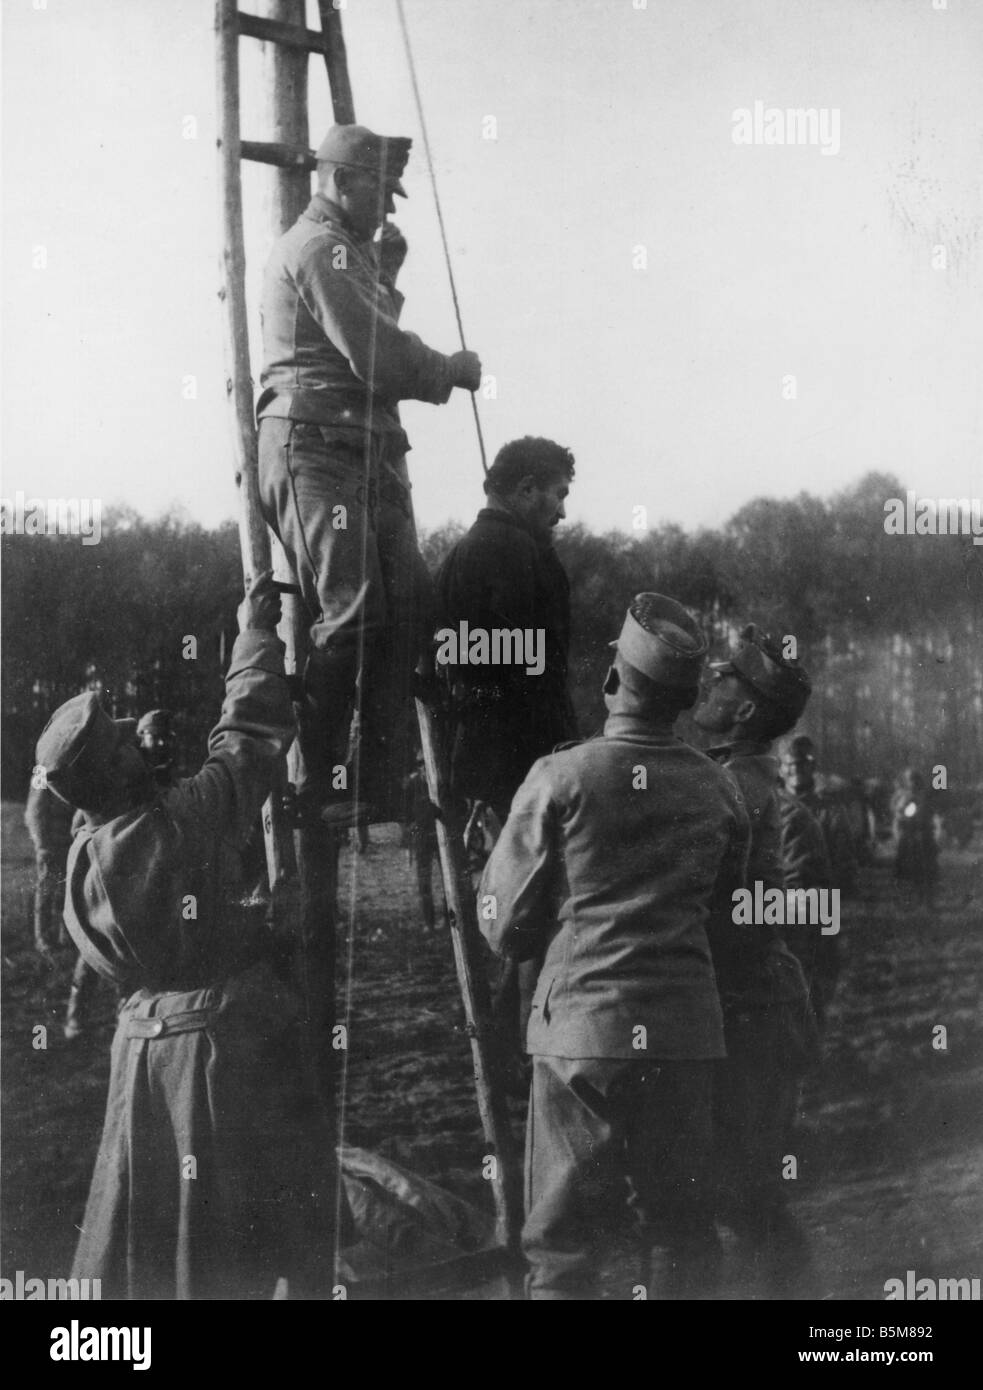 2 G55 B2 1916 7 Execution of a civilian World War I History World War I The Balkans A court martial execution of - Stock Image